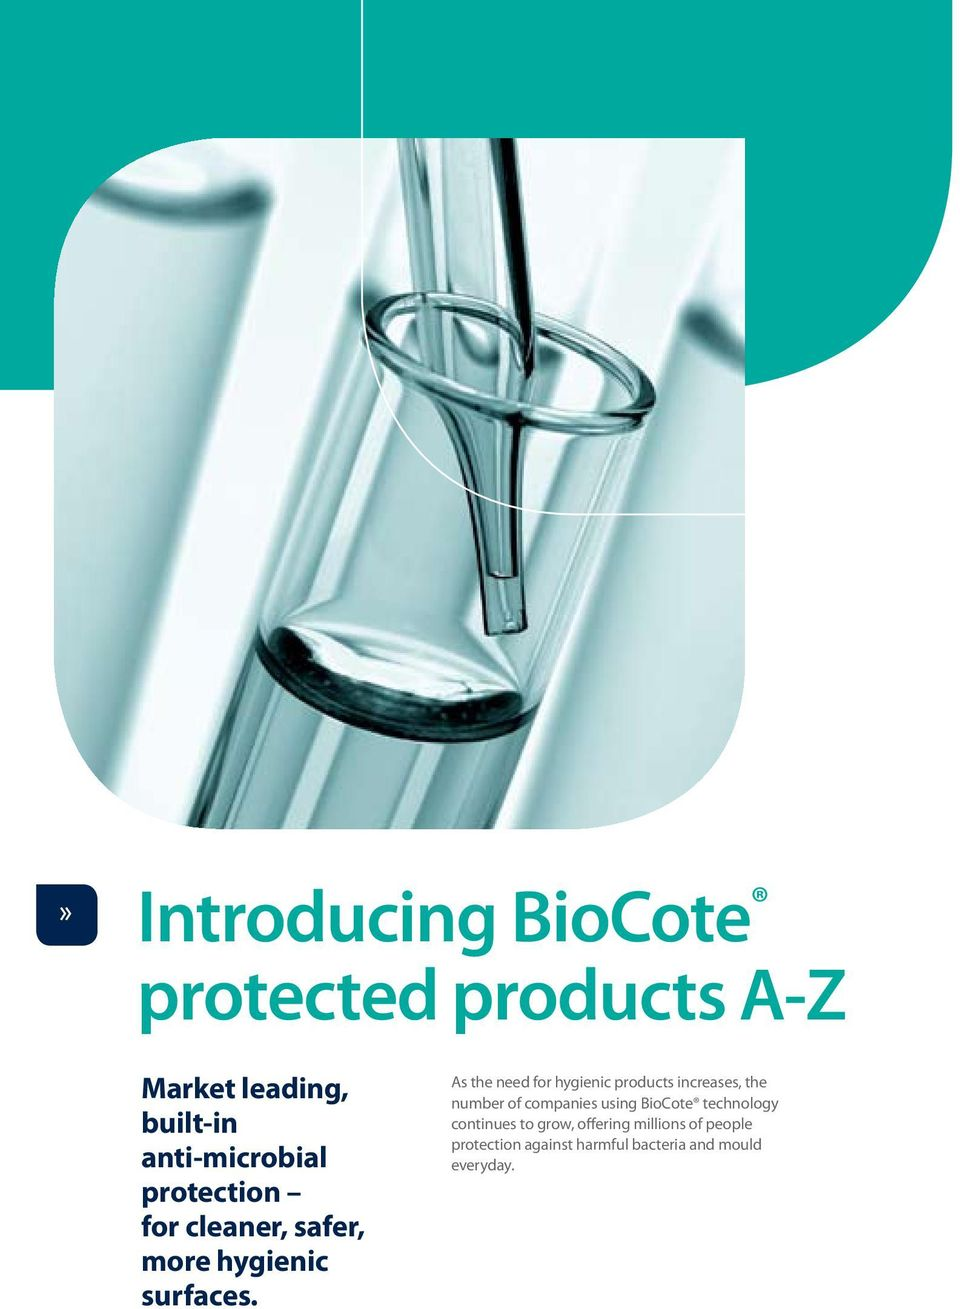 As the need for hygienic products increases, the number of companies using BioCote